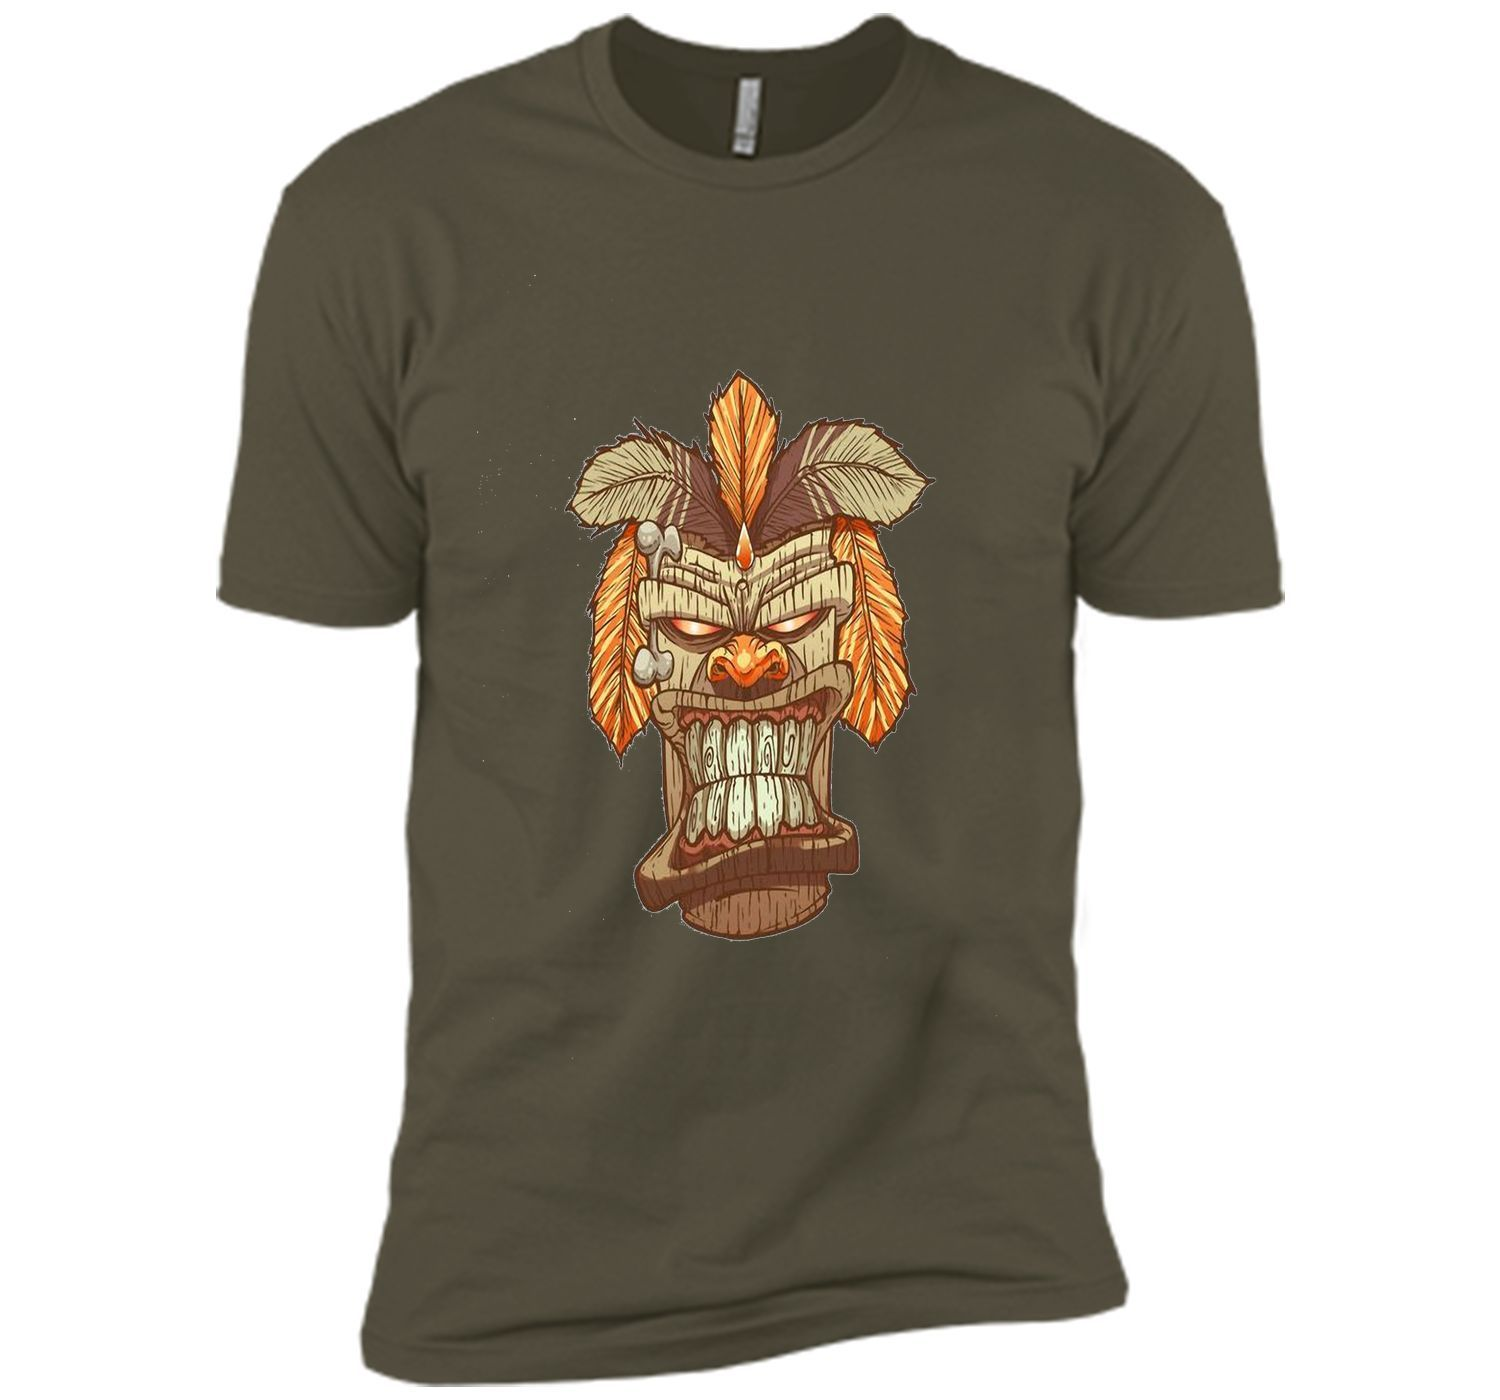 Tiki God Mask T-Shirt, Mask Shirt for Man, Woman, Children